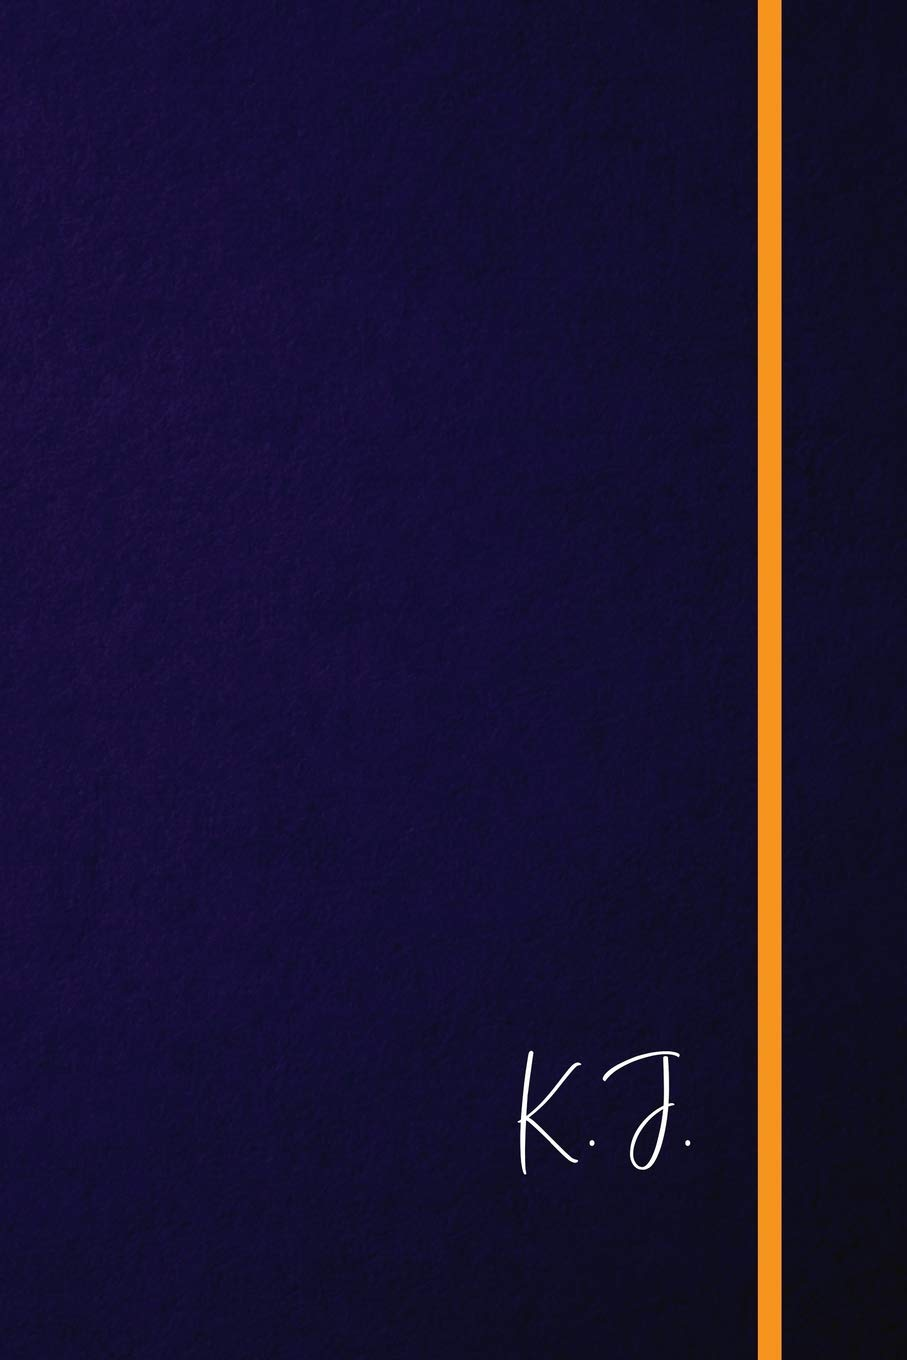 Buy K J Classic Monogram Lined Notebook Personalized With Two Initials Matte Softcover Professional Style Paperback Journal Perfect Gift For Men And Women Book Online At Low Prices In India K J